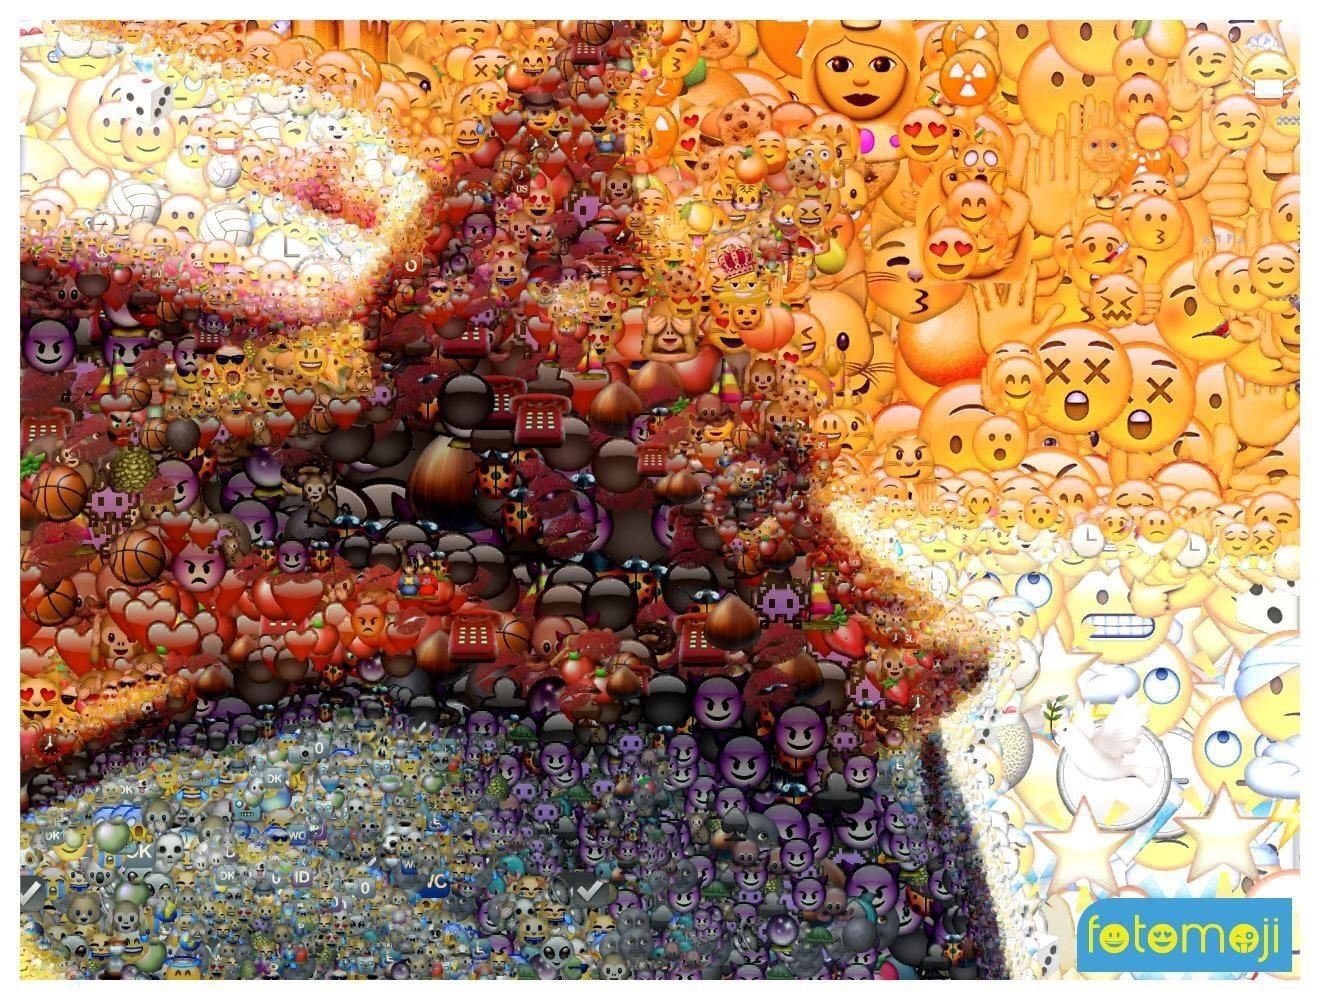 Create Emoji Art from Your Photos Using This Fun Tool